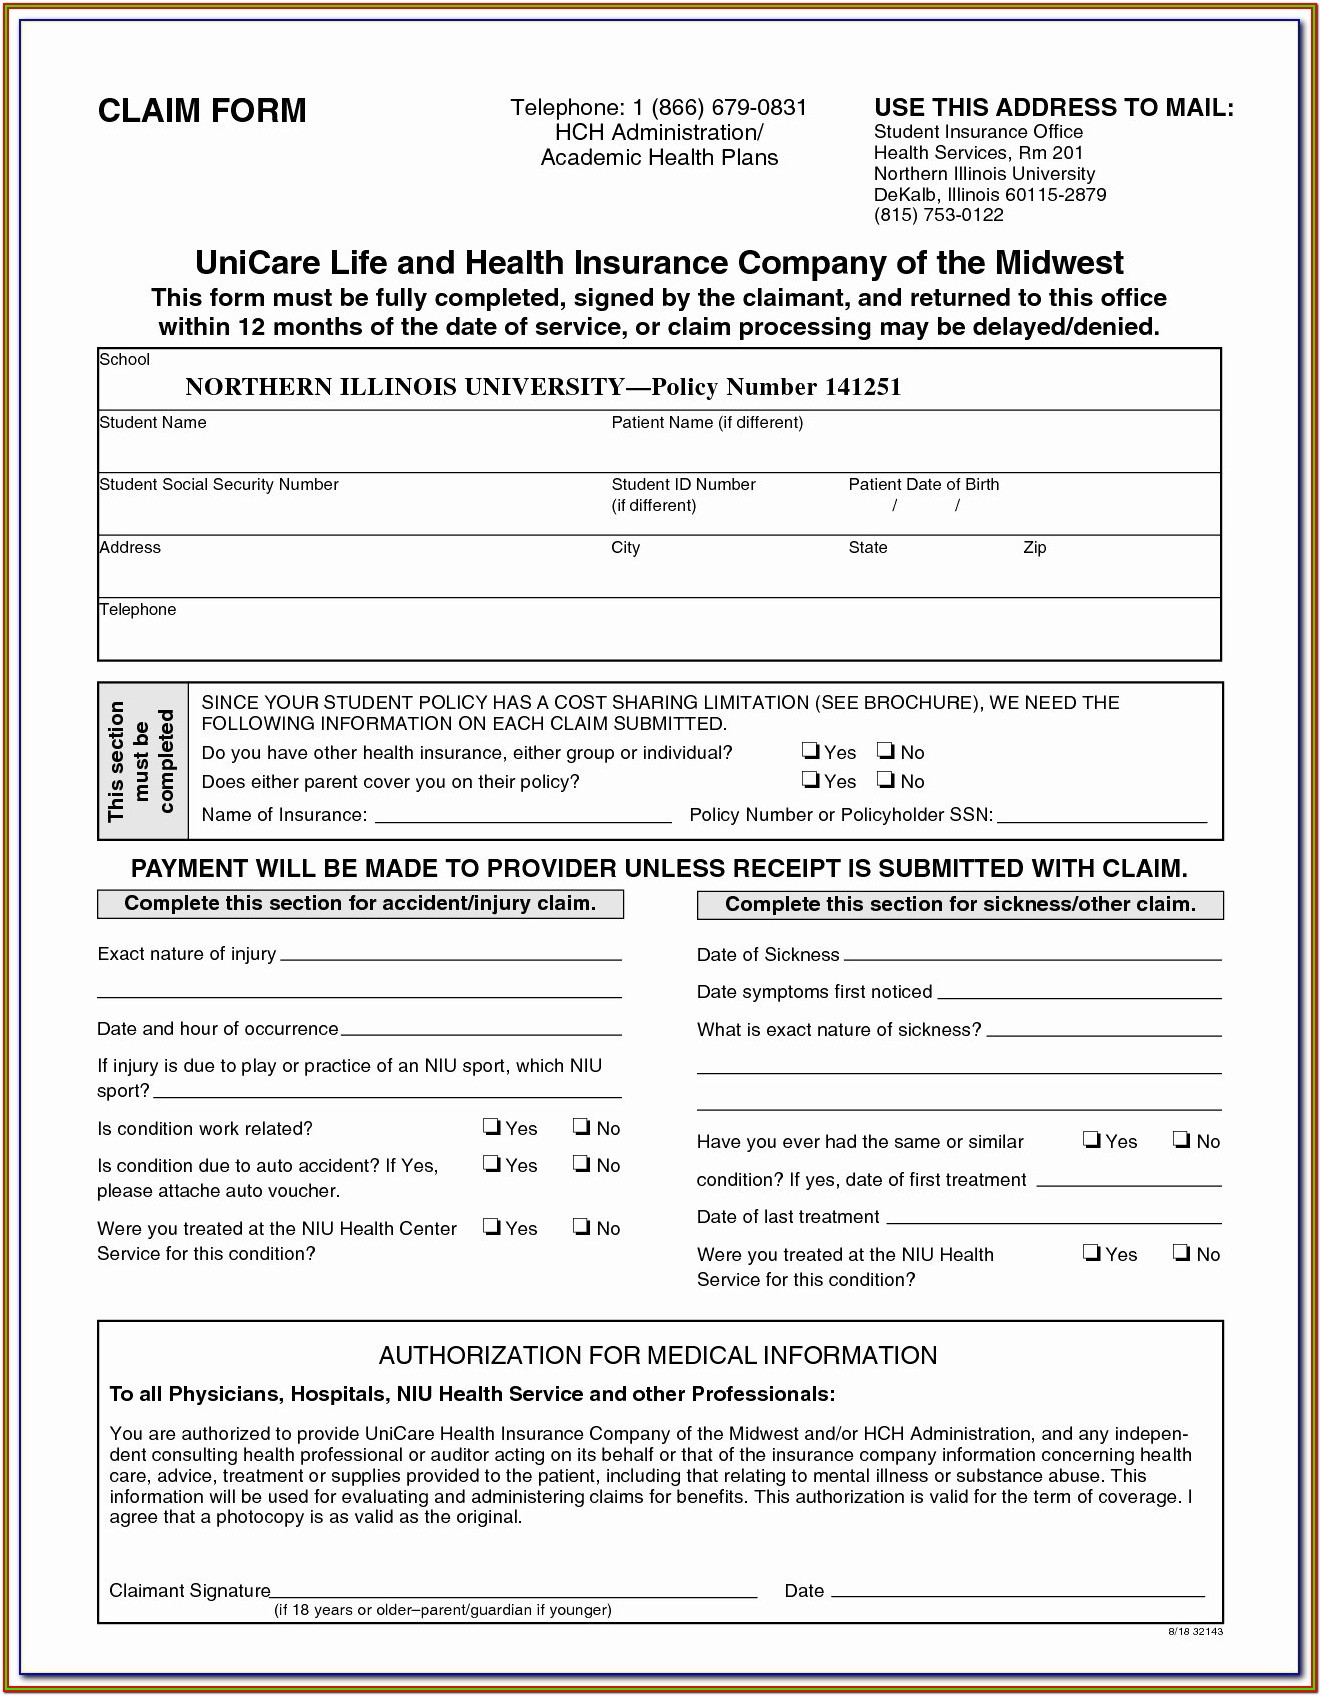 Homeowners Insurance Application Form